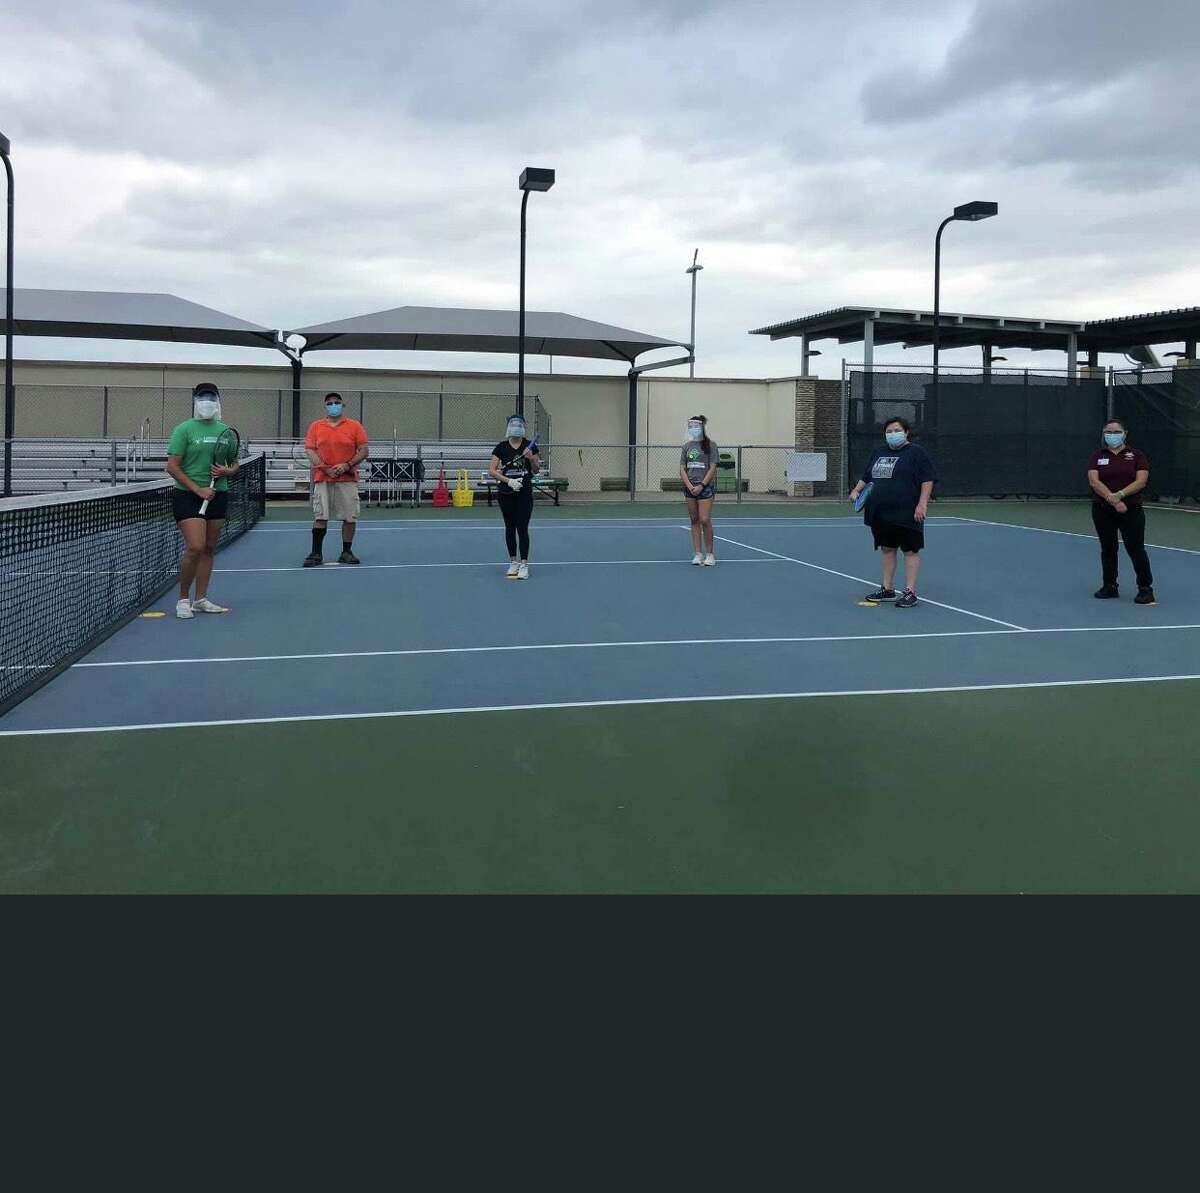 TAMIU College of Nursing and Health Sciences, Dr. F. M. Canseco School of Nursing students provided preventative health education and group activities, including a tennis class via Zoom.